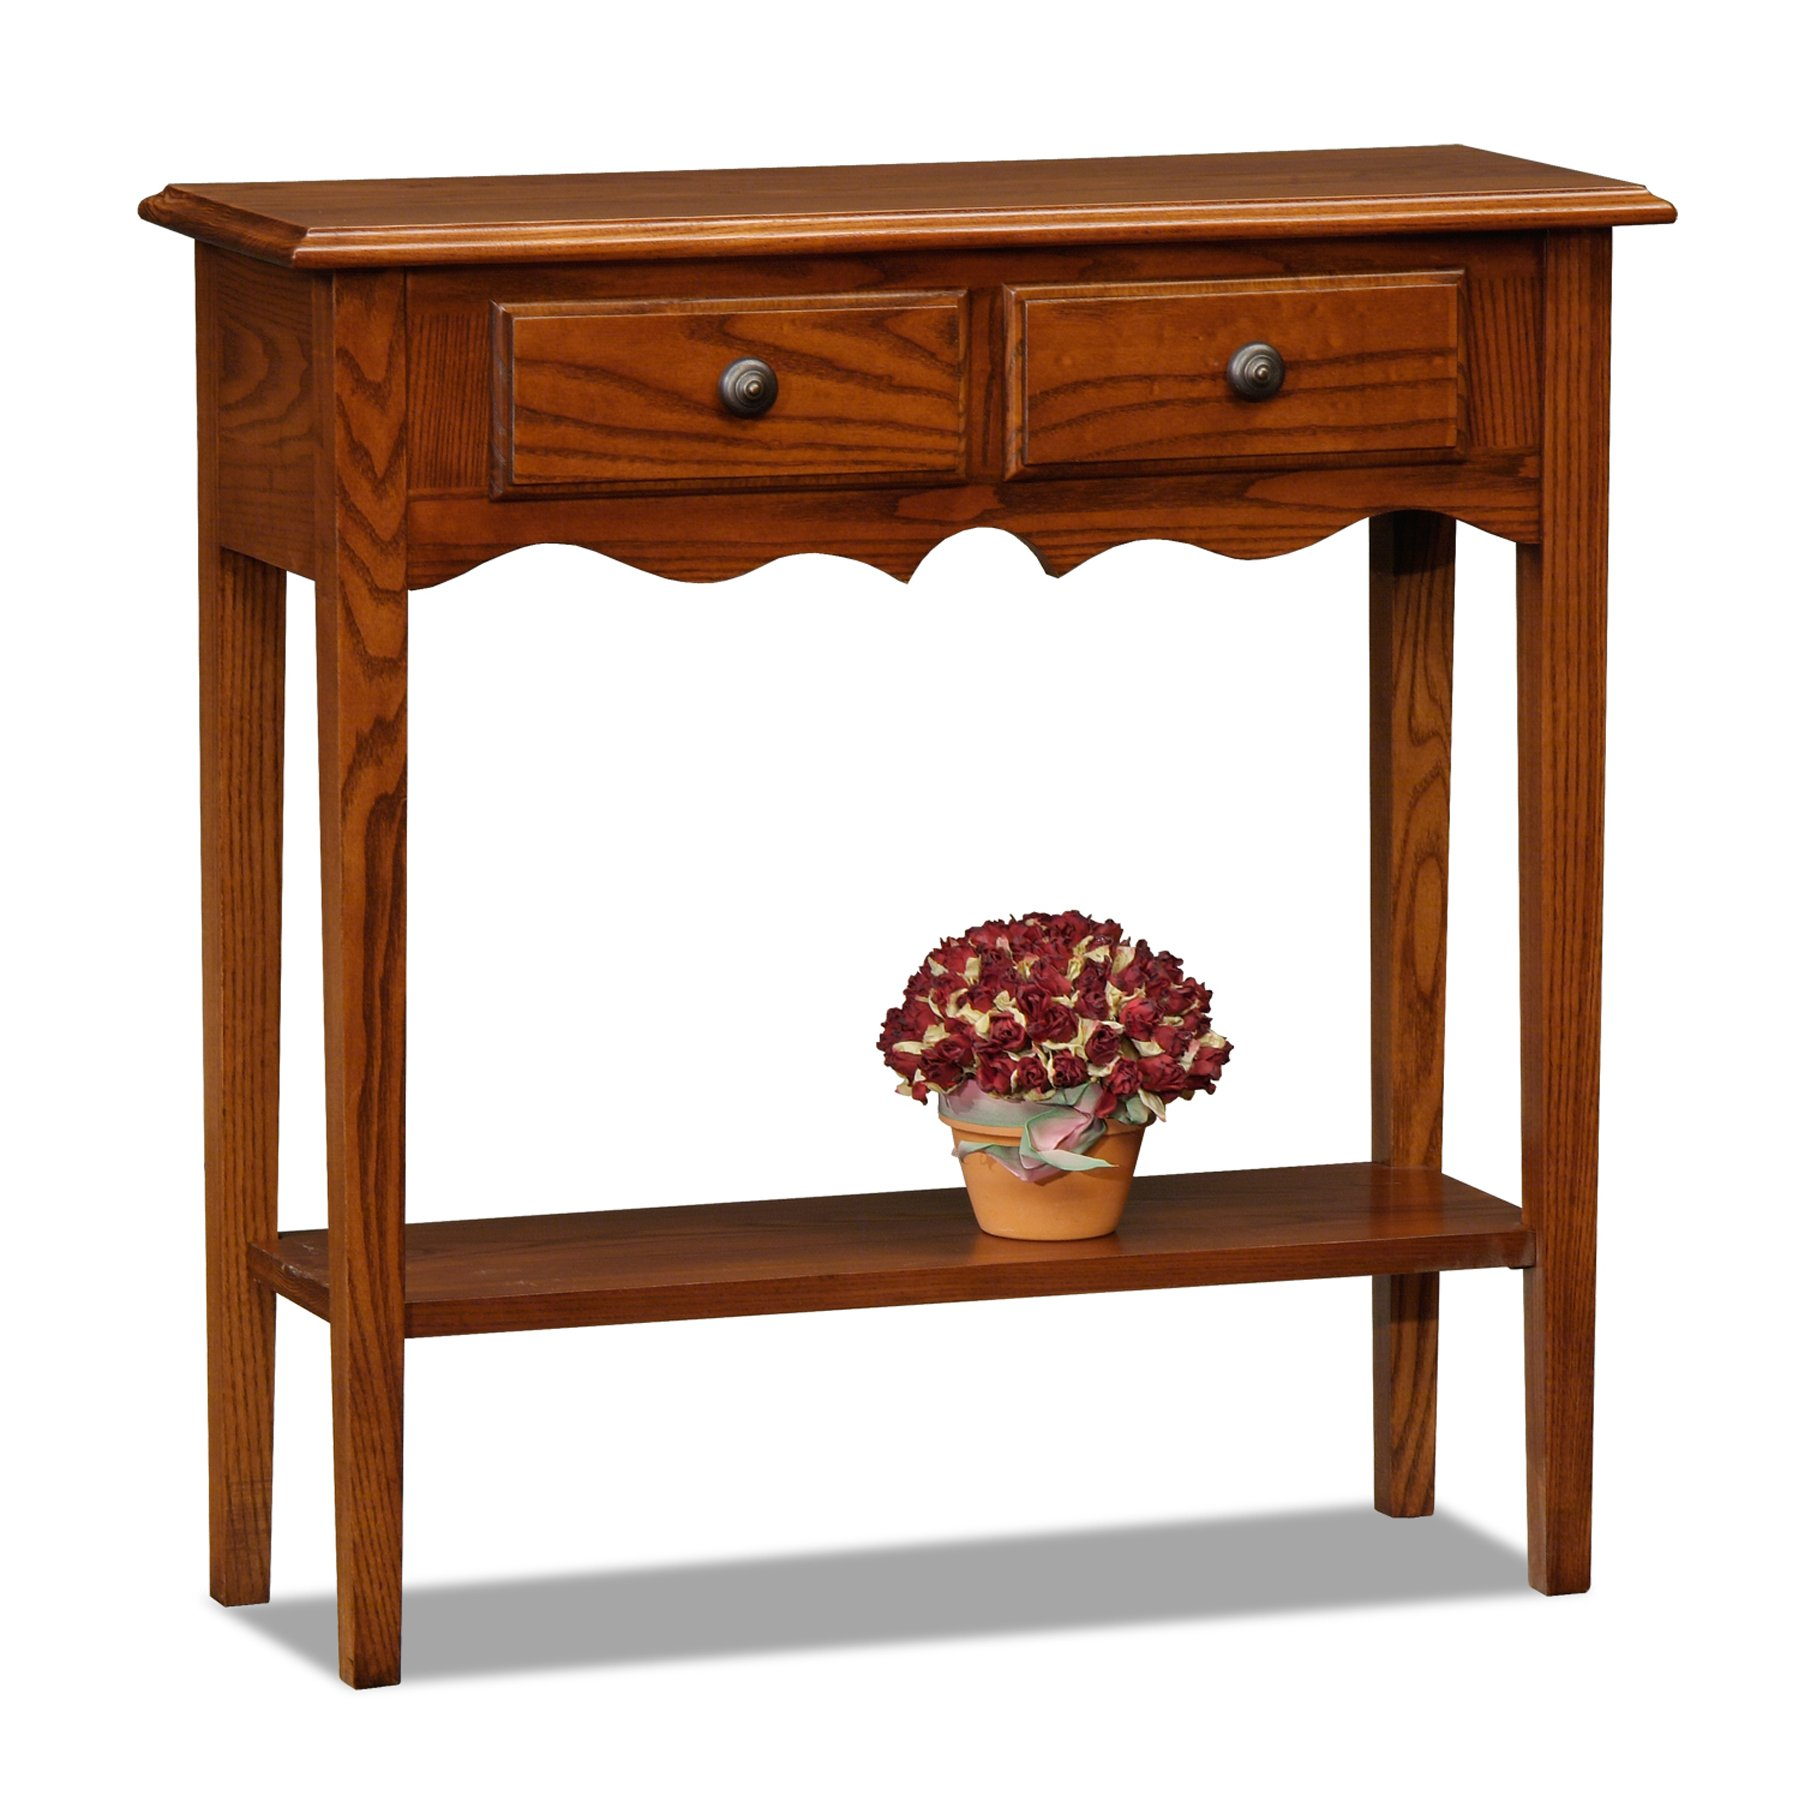 Leick 9027-MED Favorite Finds Console Table, Medium Oak by Leick Furniture